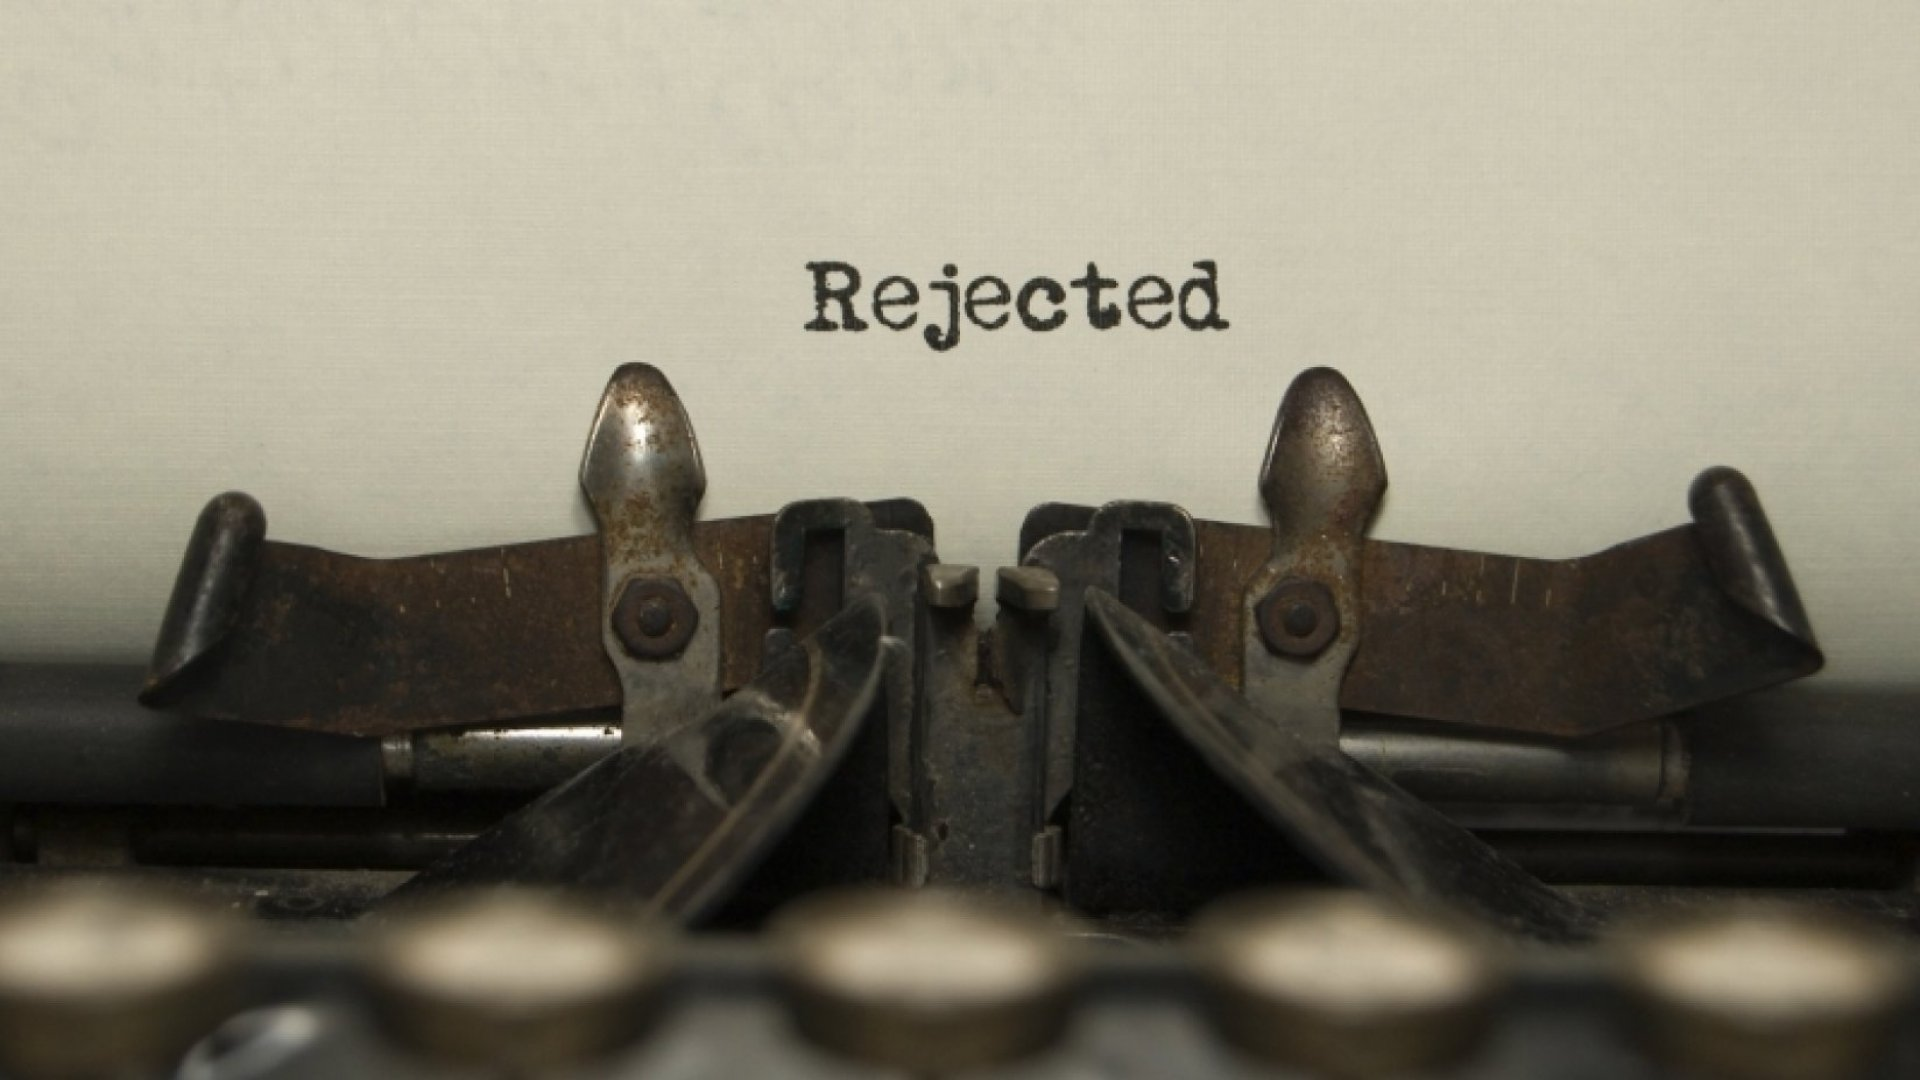 Do You Really Need to Send Rejections to Job Candidates You're Not Even Interviewing?